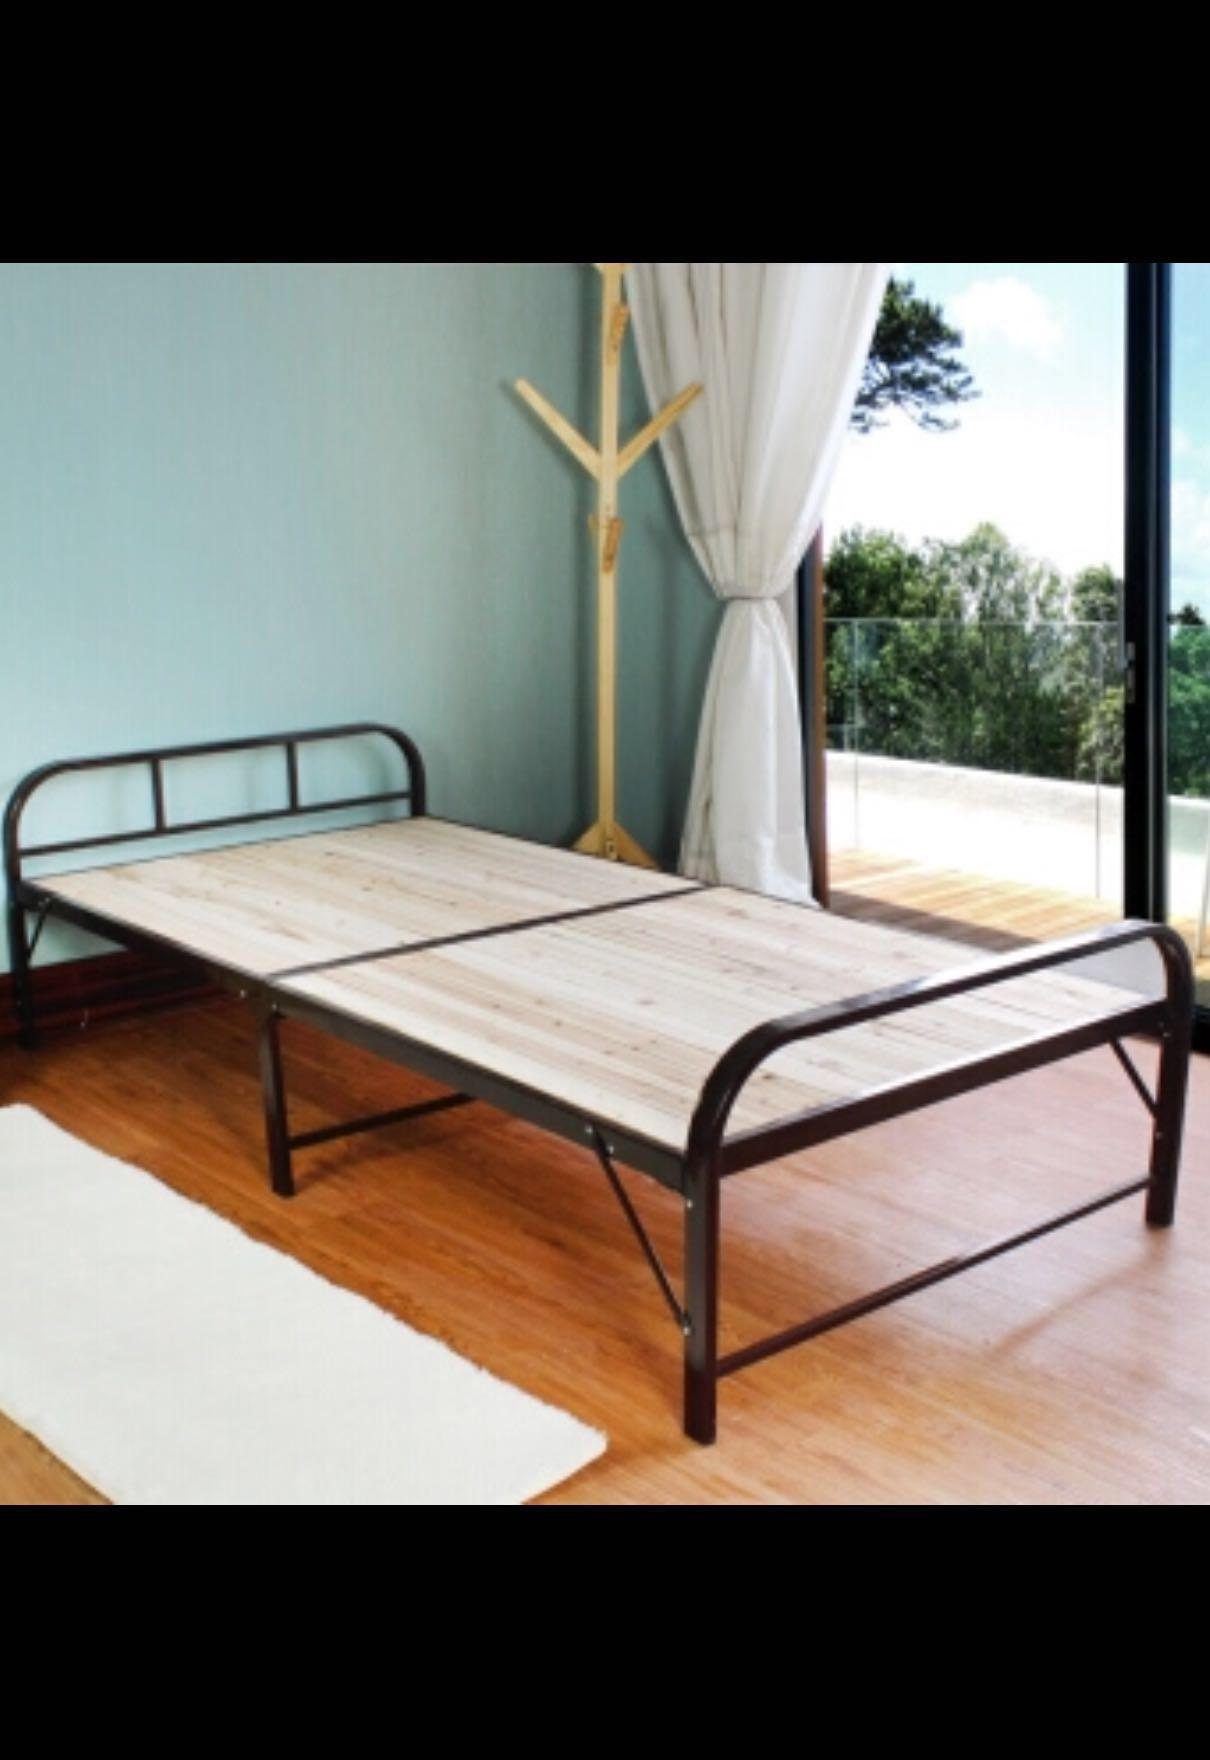 half off e8e14 4822f Instock Foldable bed frame (small single size ) 70cm*190cm ...